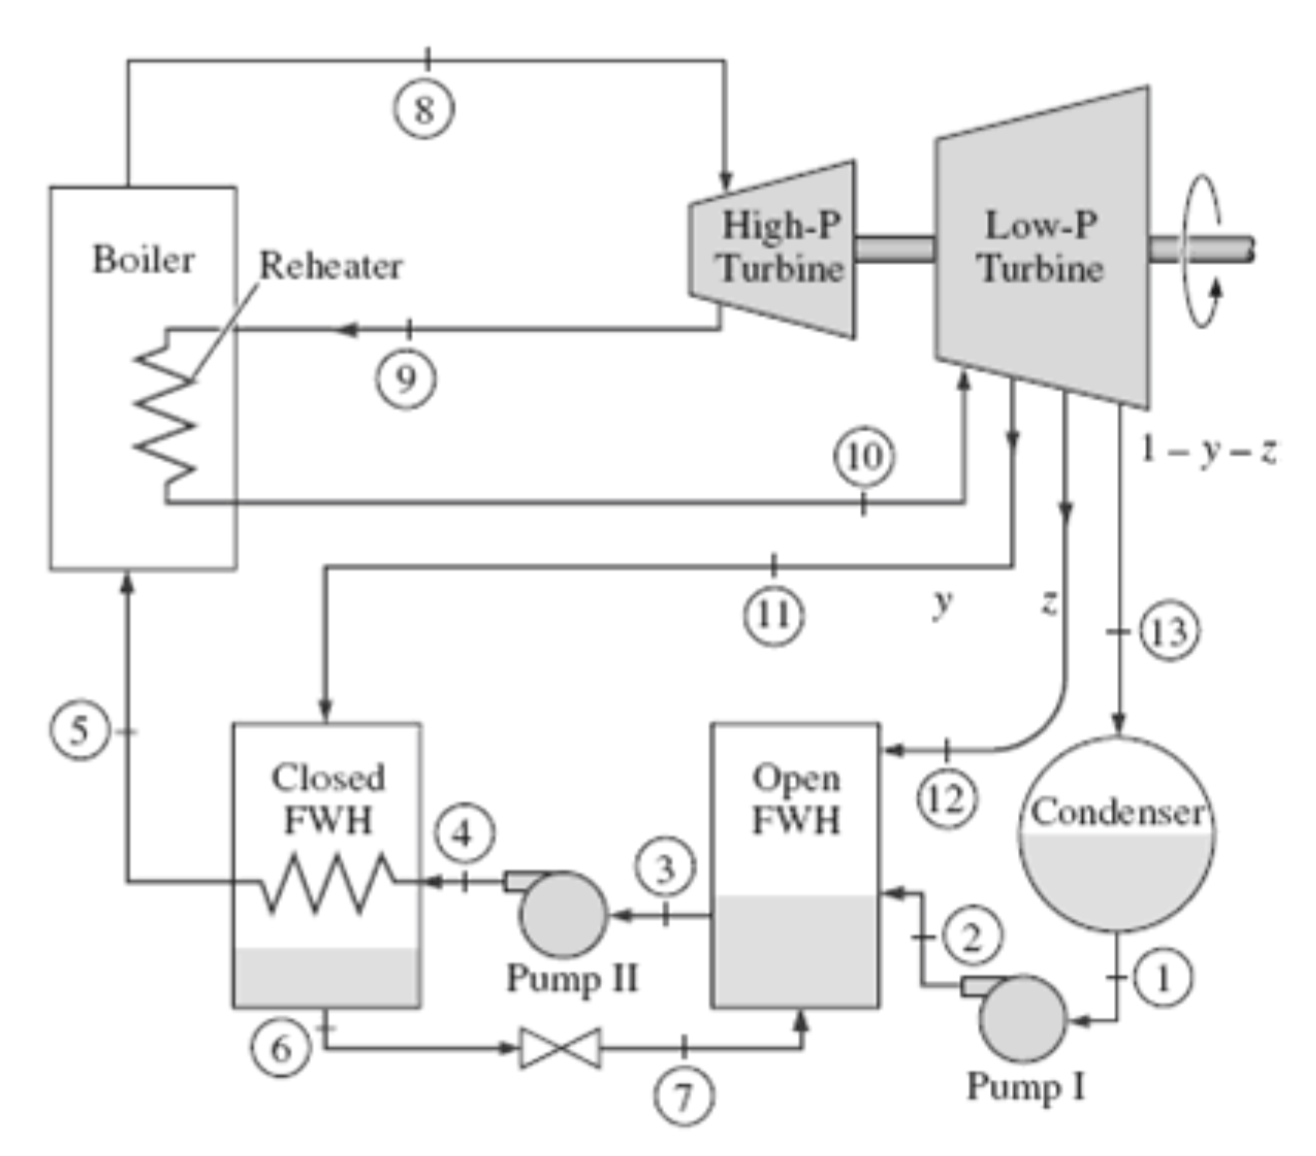 hight resolution of a steam power plant operates on an ideal reheat r